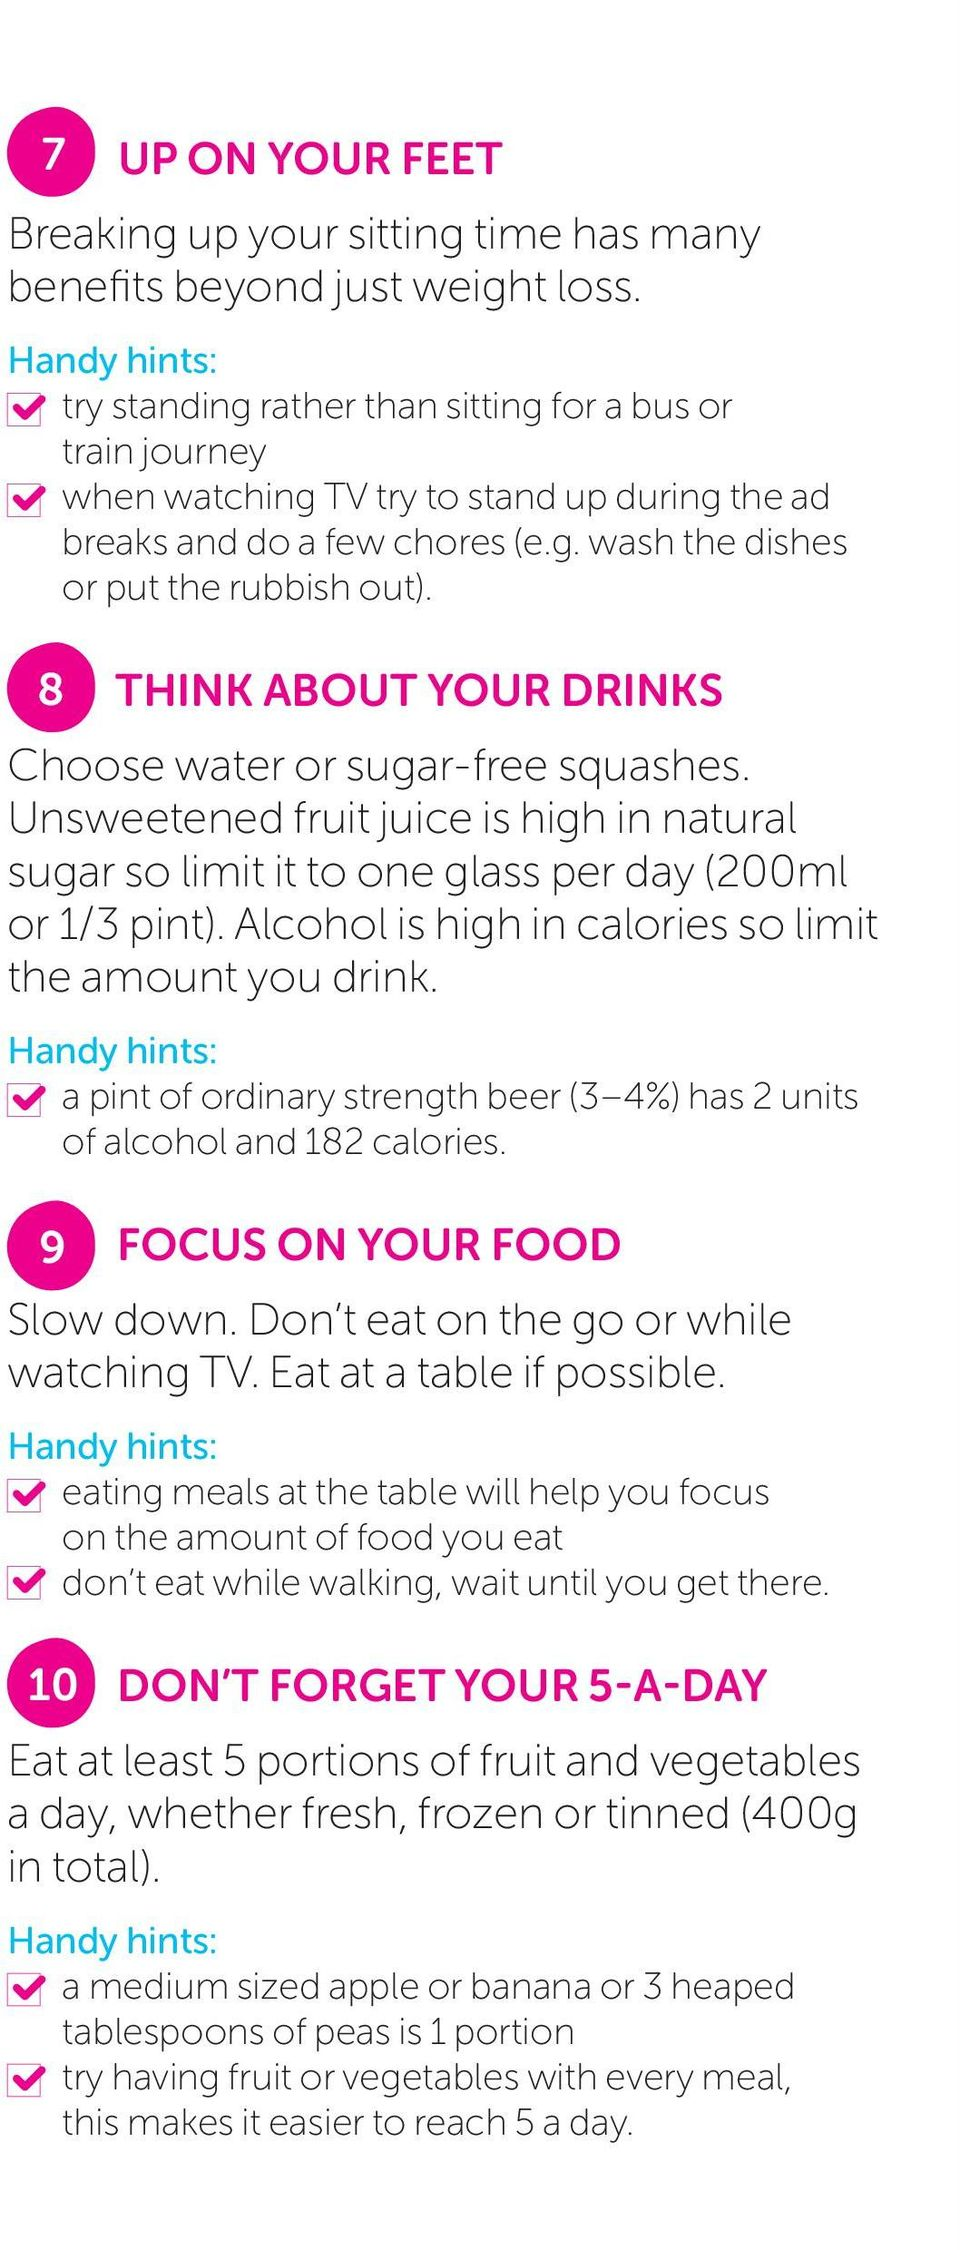 8 THINK ABOUT YOUR DRINKS Choose water or sugar-free squashes. Unsweetened fruit juice is high in natural sugar so limit it to one glass per day (200ml or 1/3 pint).